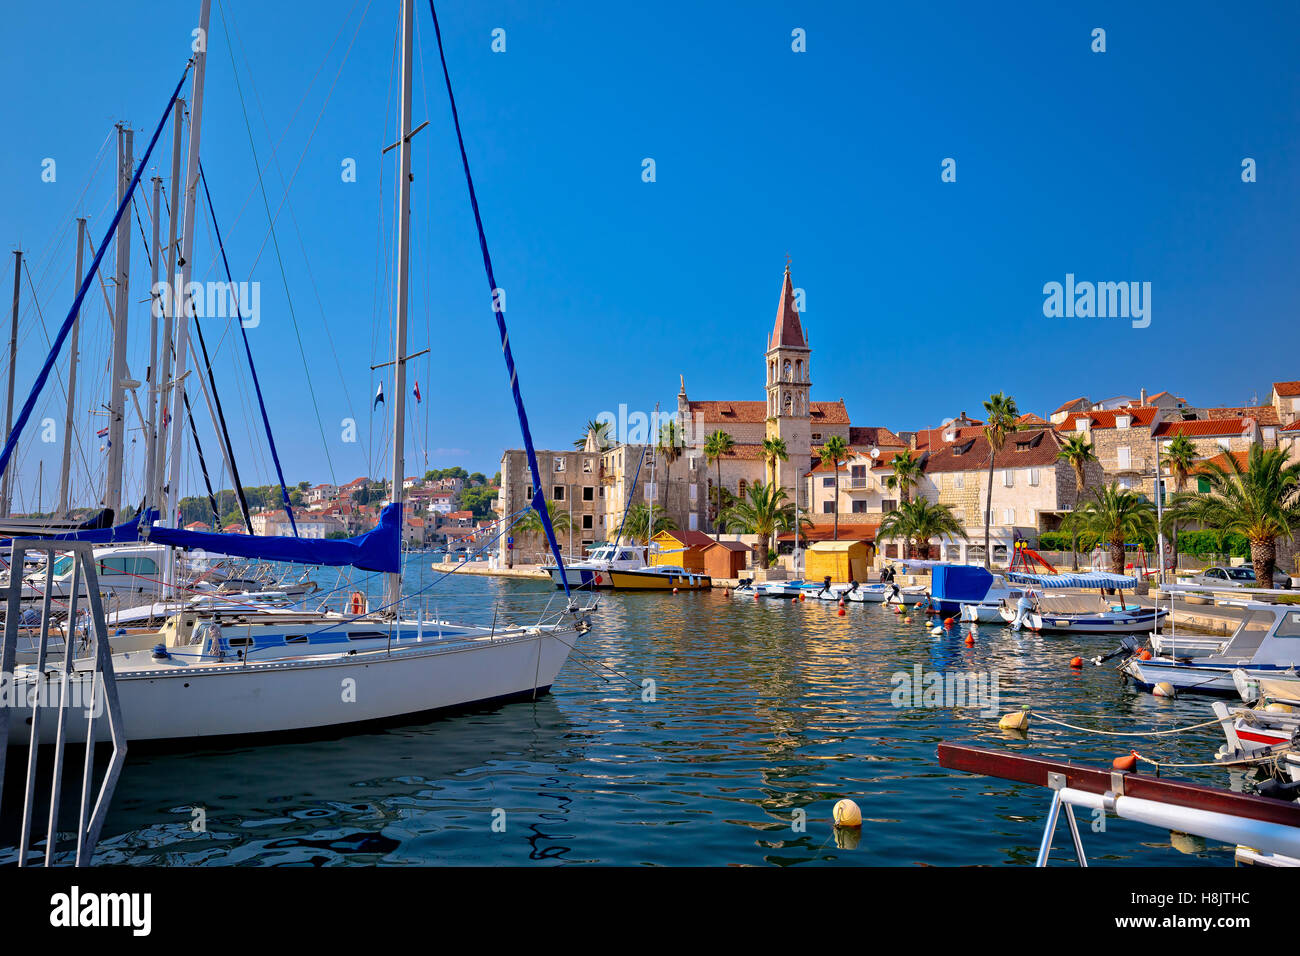 Town of Milna waterfront and marina view, Island of Brac, Dalmatia, Croatia - Stock Image